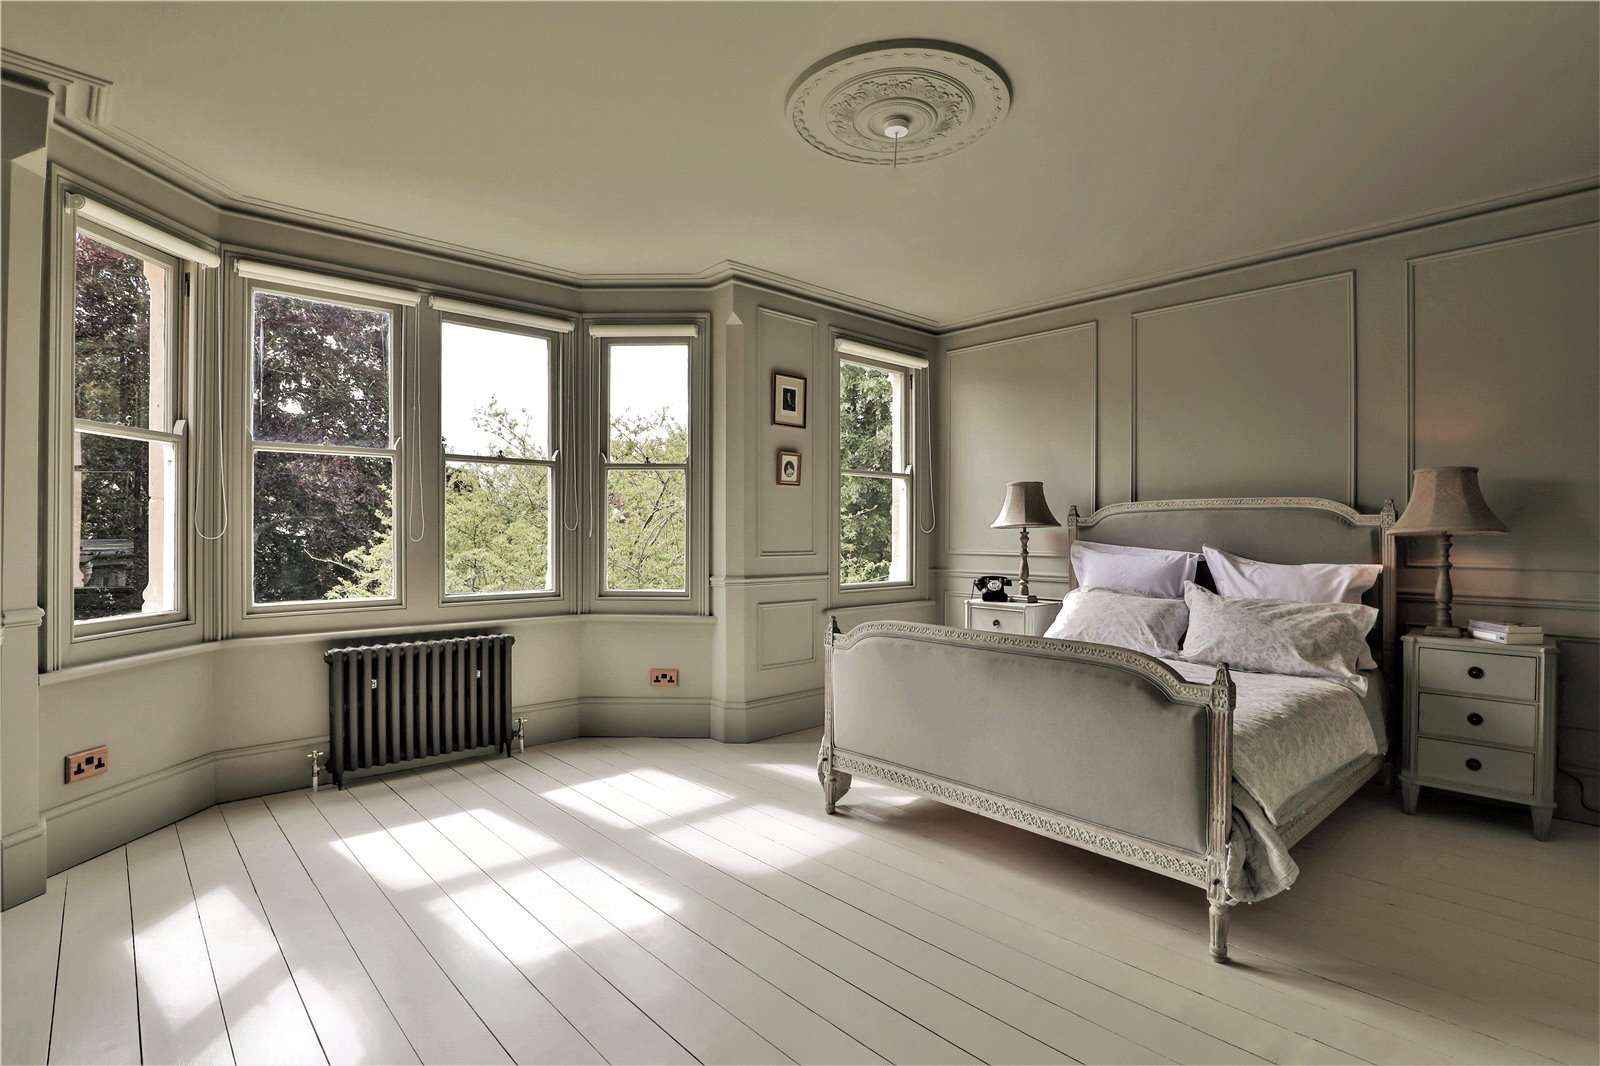 An elegantly-proportioned Victorian house on Woodstock Road in Oxford - Image Gallery 14 - Bedroom